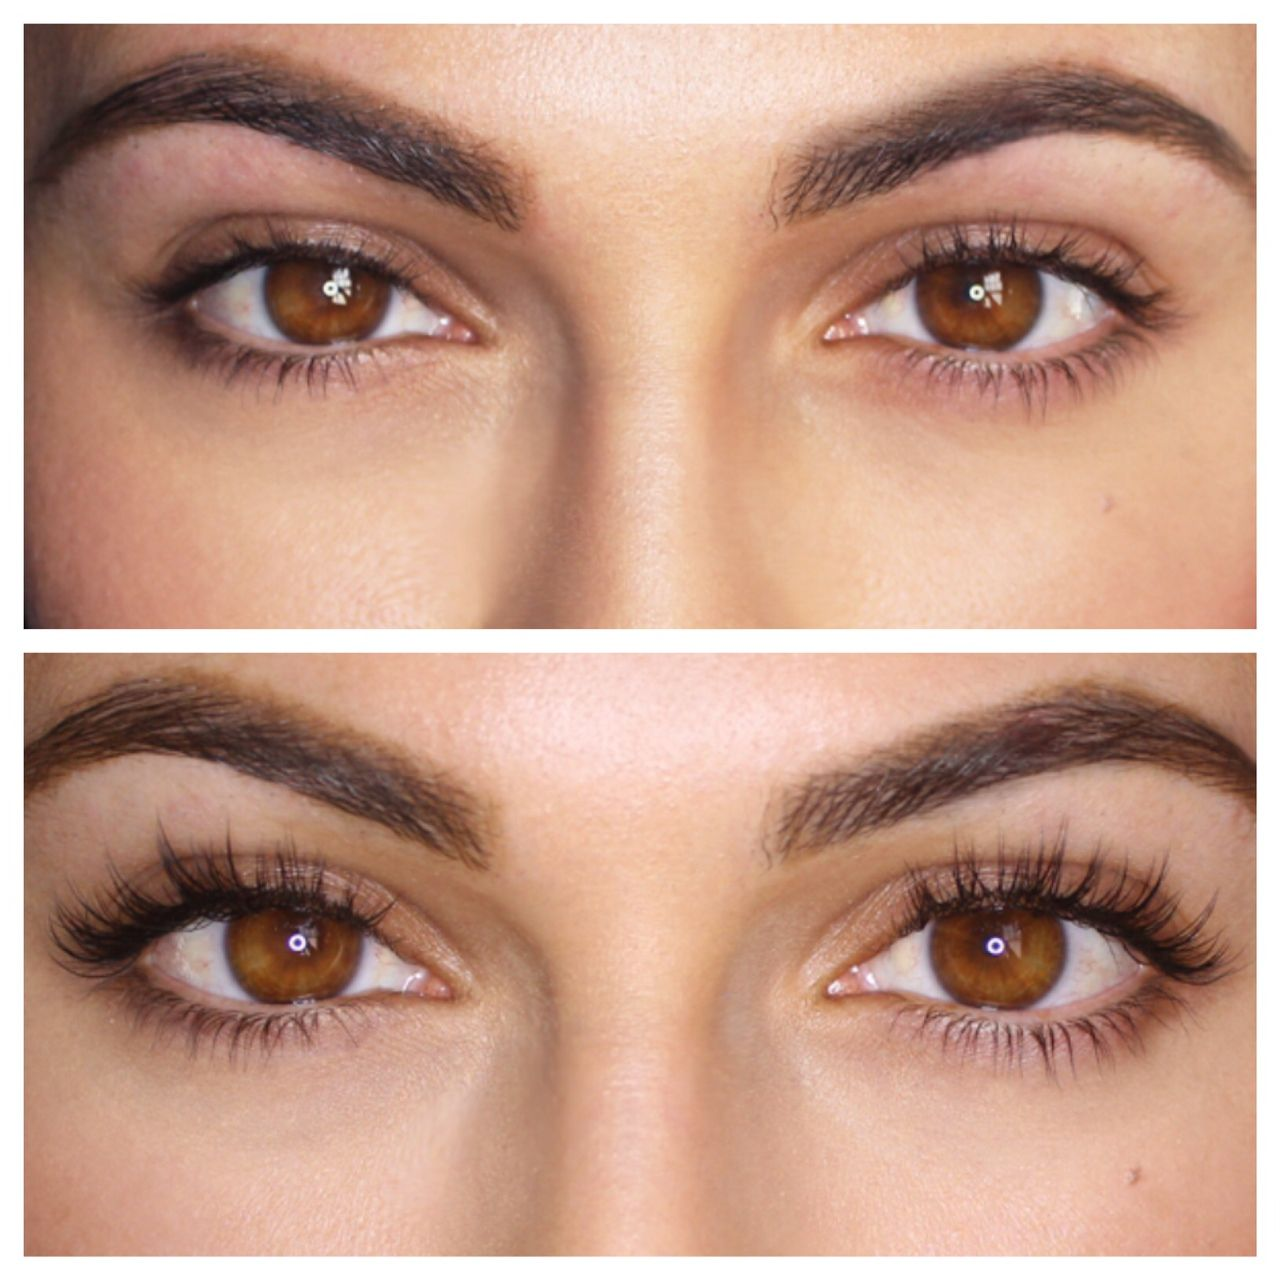 lash extensions, before and after | Makeup Ideas ...